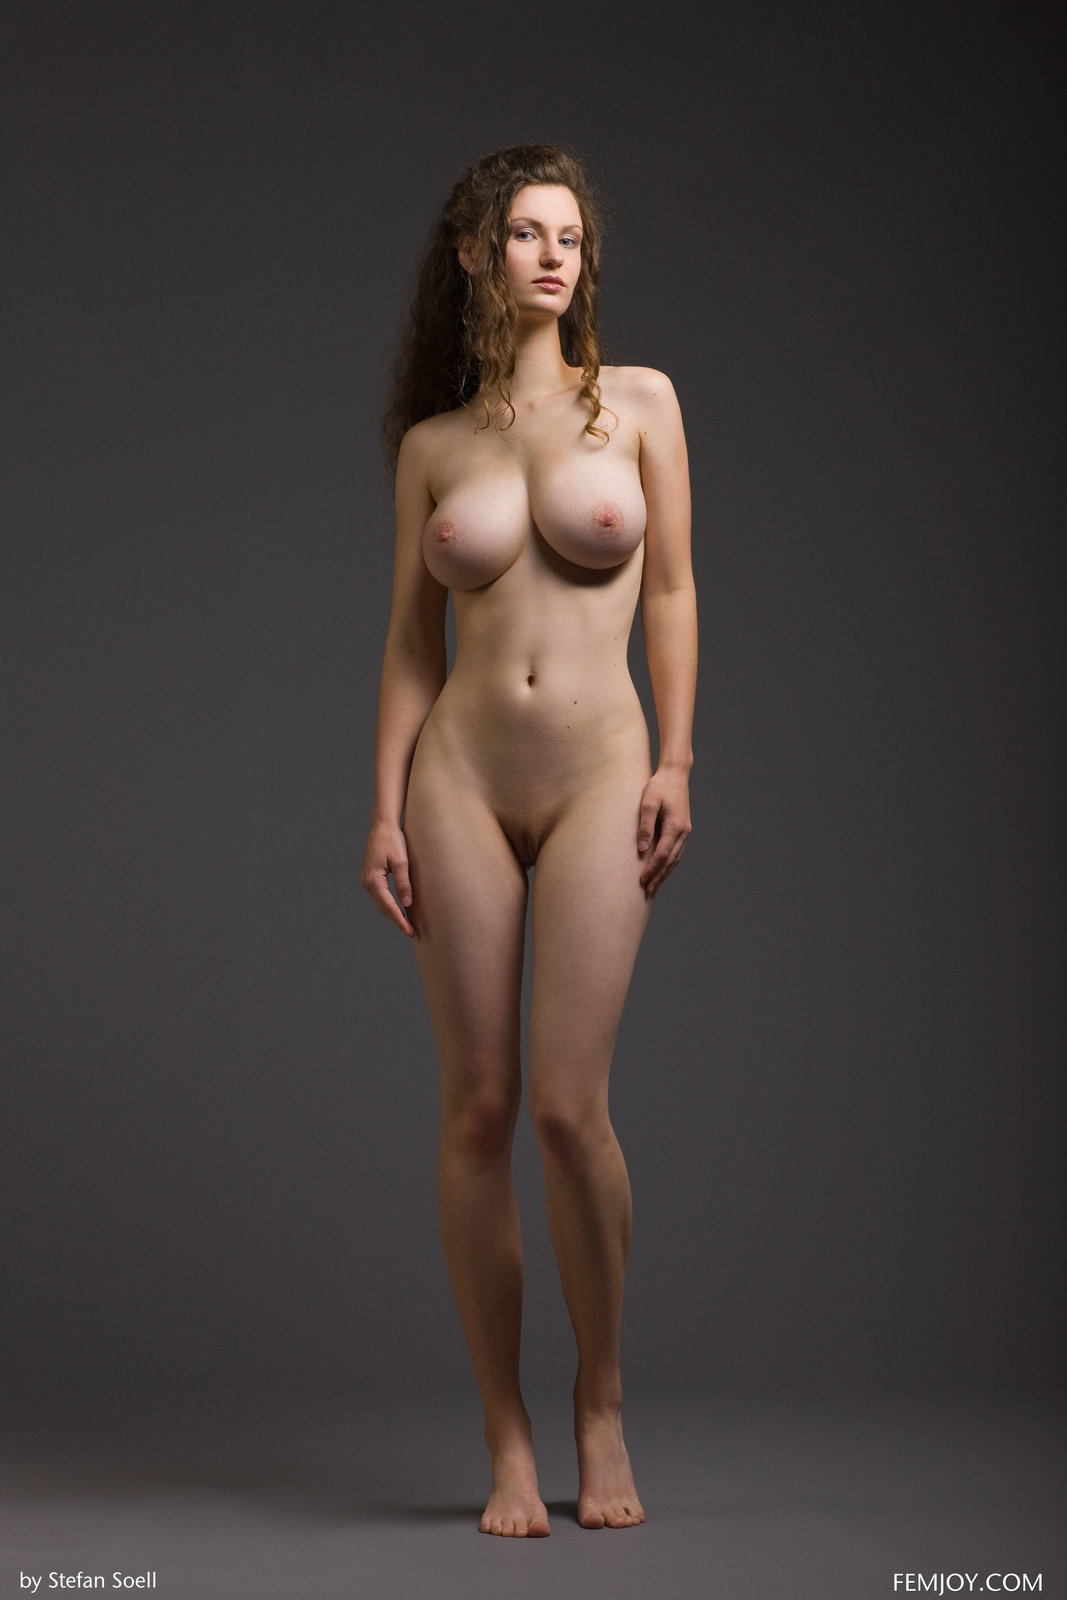 Nude female art-5577